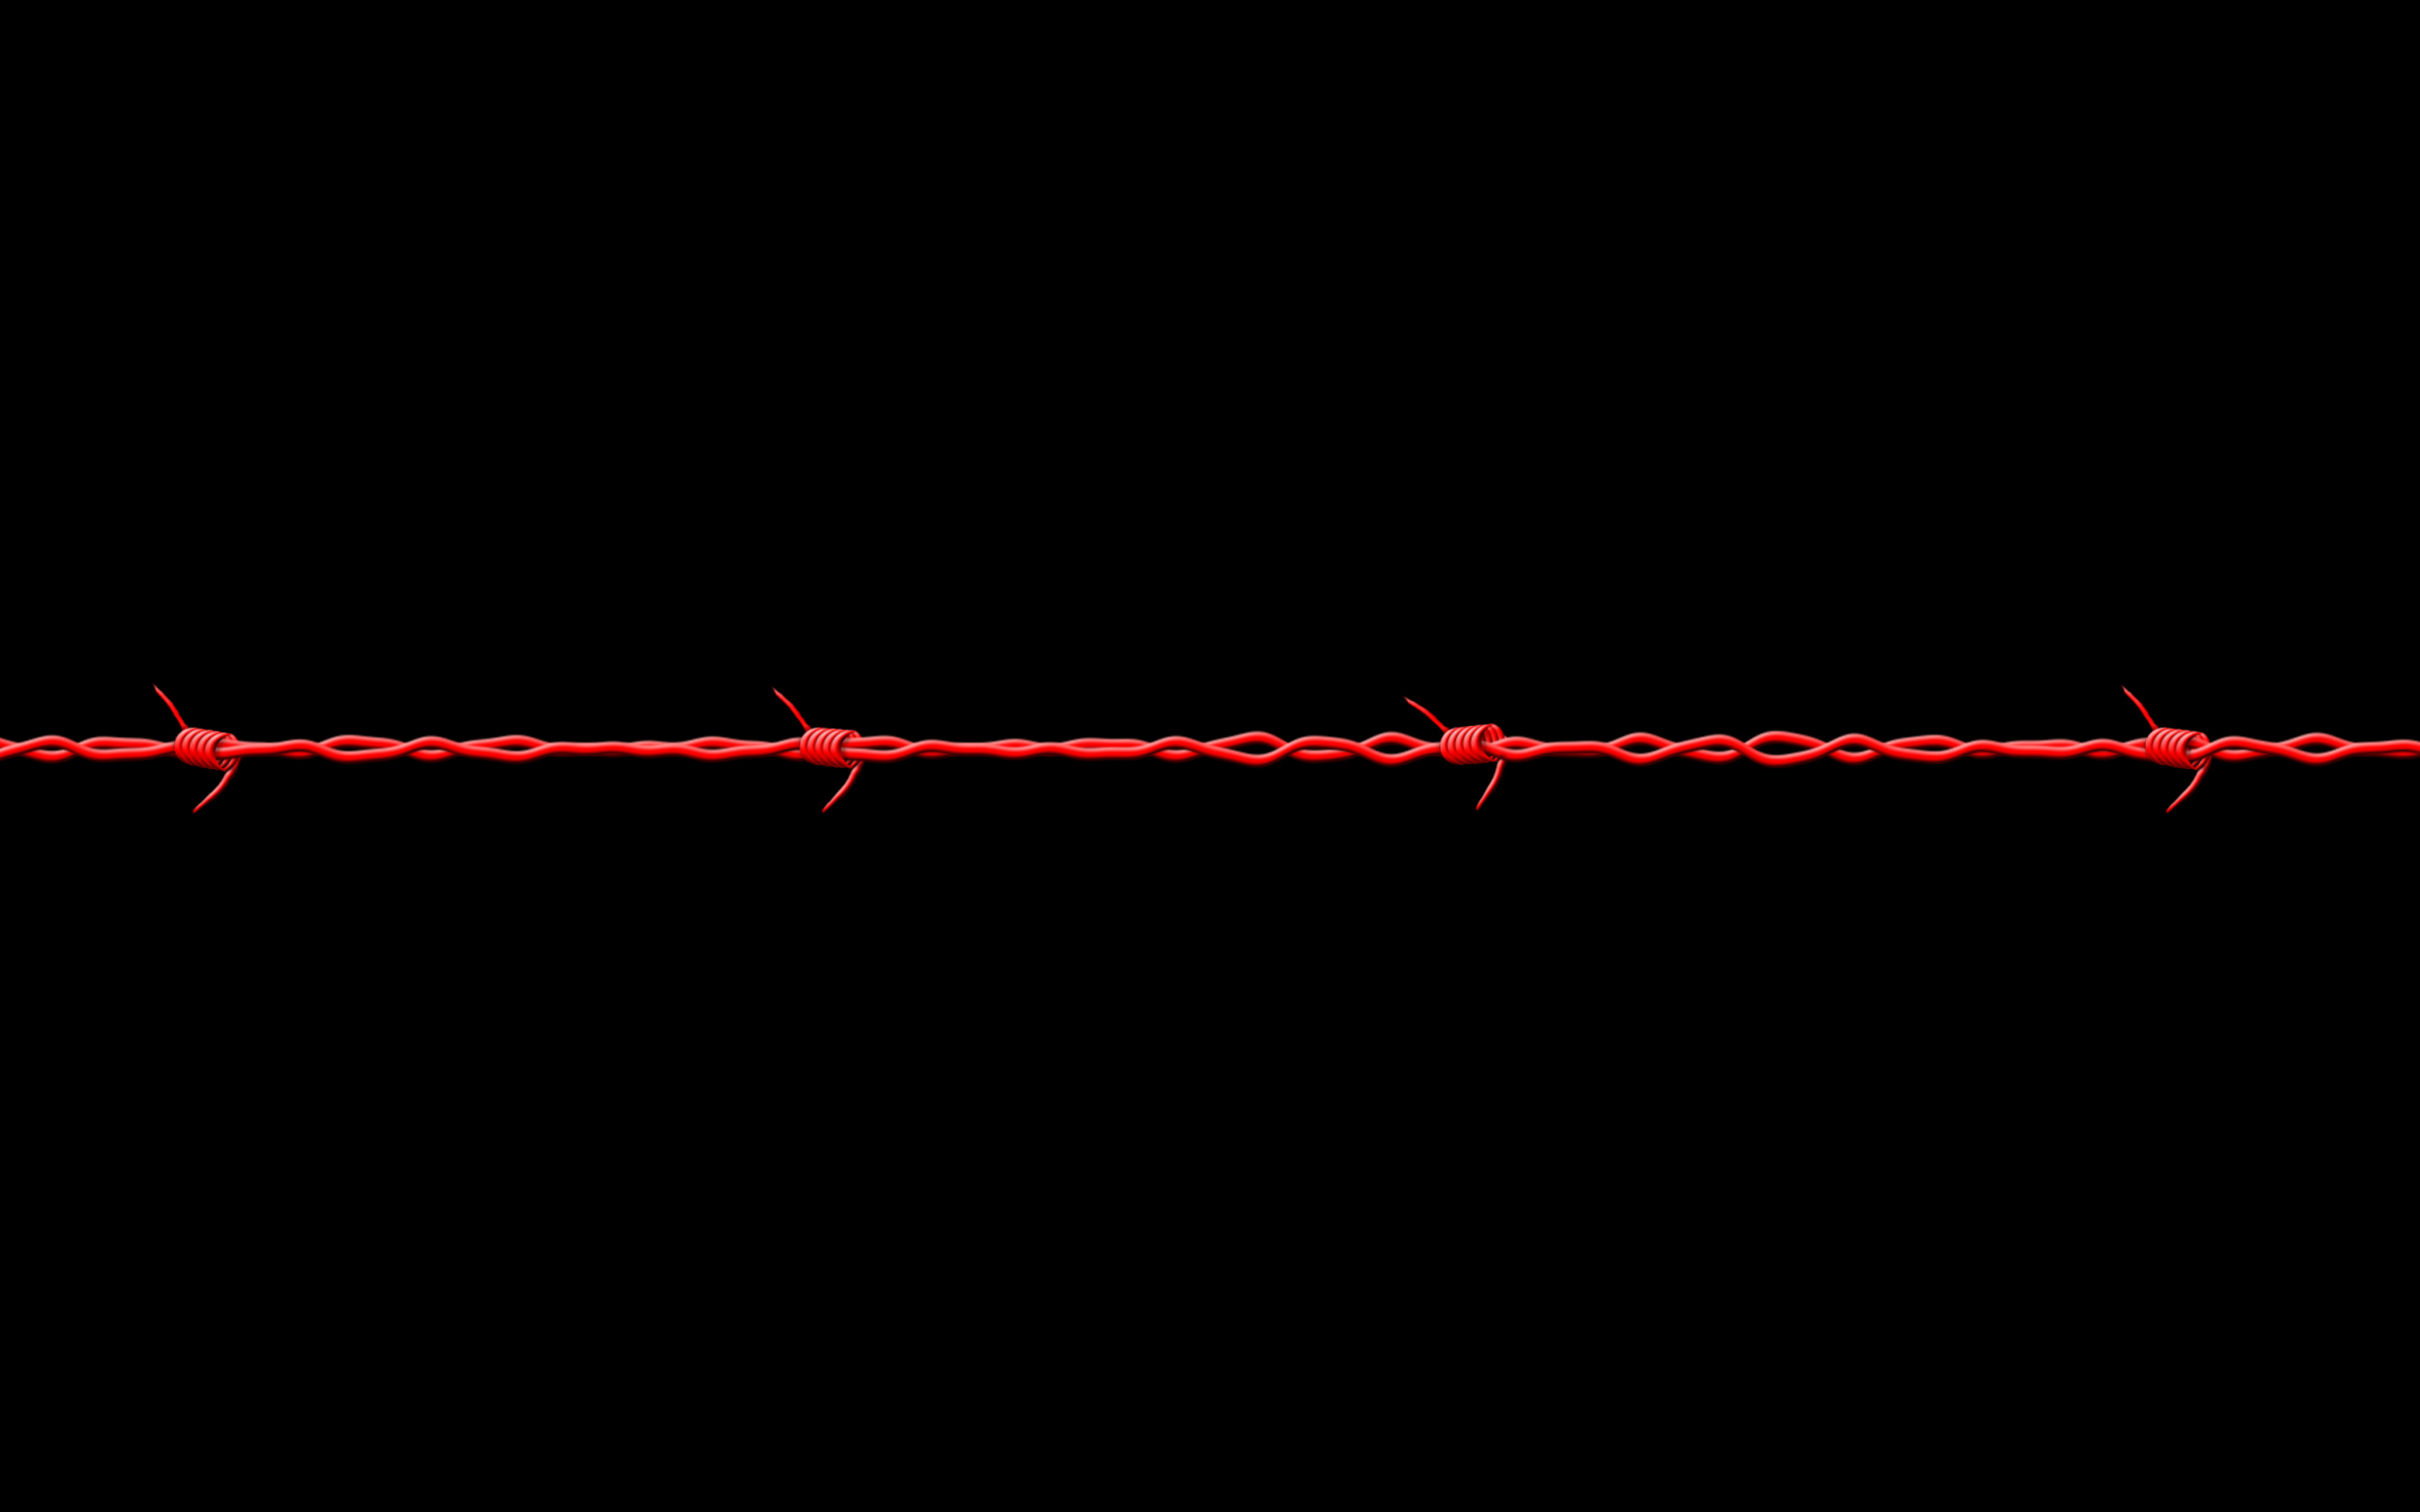 Wallpaper 1 Barbwire Red and Black Wallpapers 2560x1600